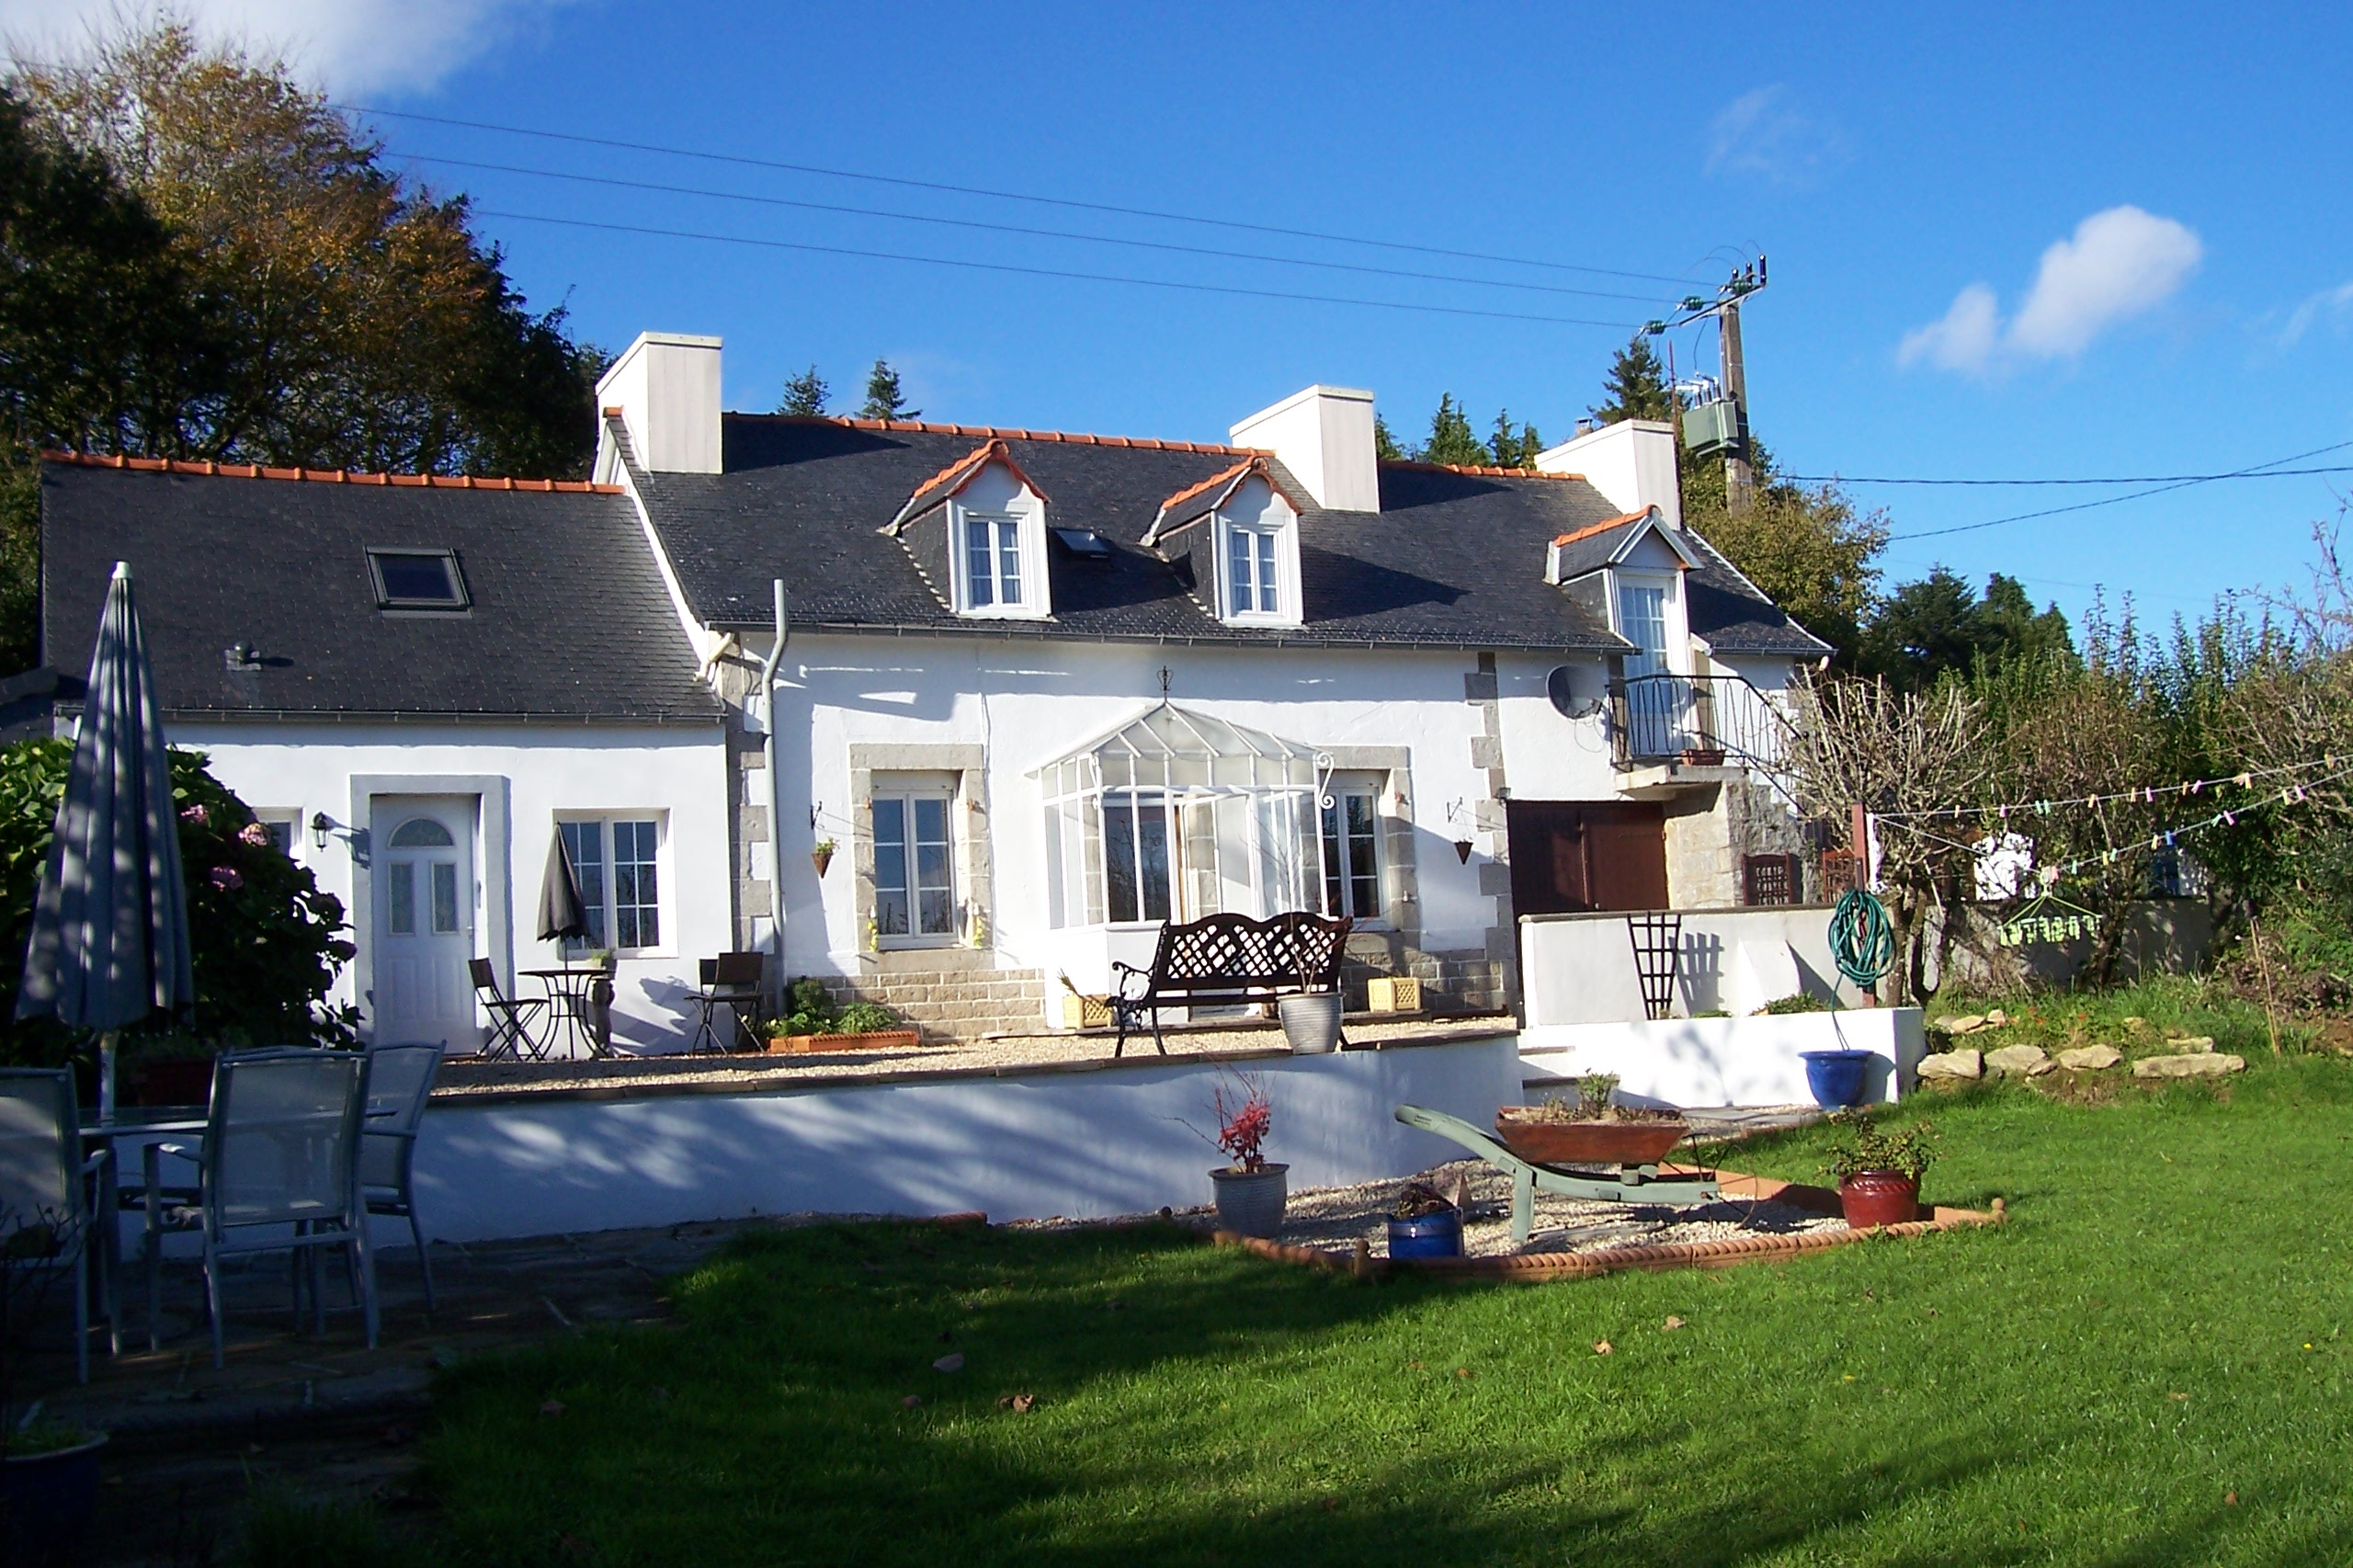 Brittany Property for sale - English Speaking Agents in Birttany, France - SARL Mayer Immobilier